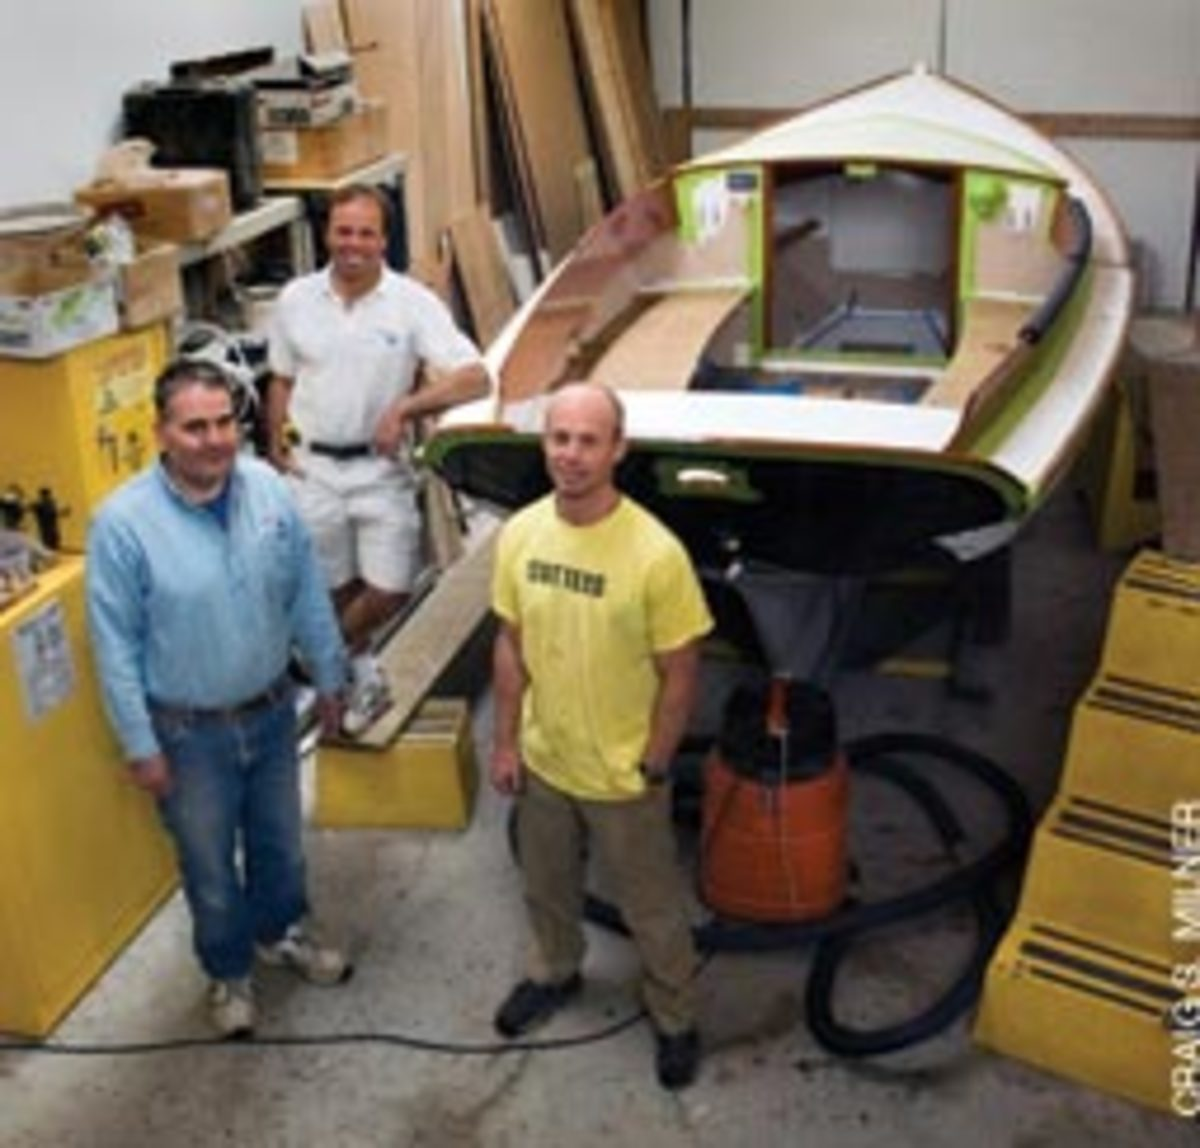 Jean Beaulieu (back), Tom Gilpatrick (left) and Stephen Linscott stand with one of the Pisces 21s in progress. These days Classic Boat Shop employs about 10 people, depending on the time of year.